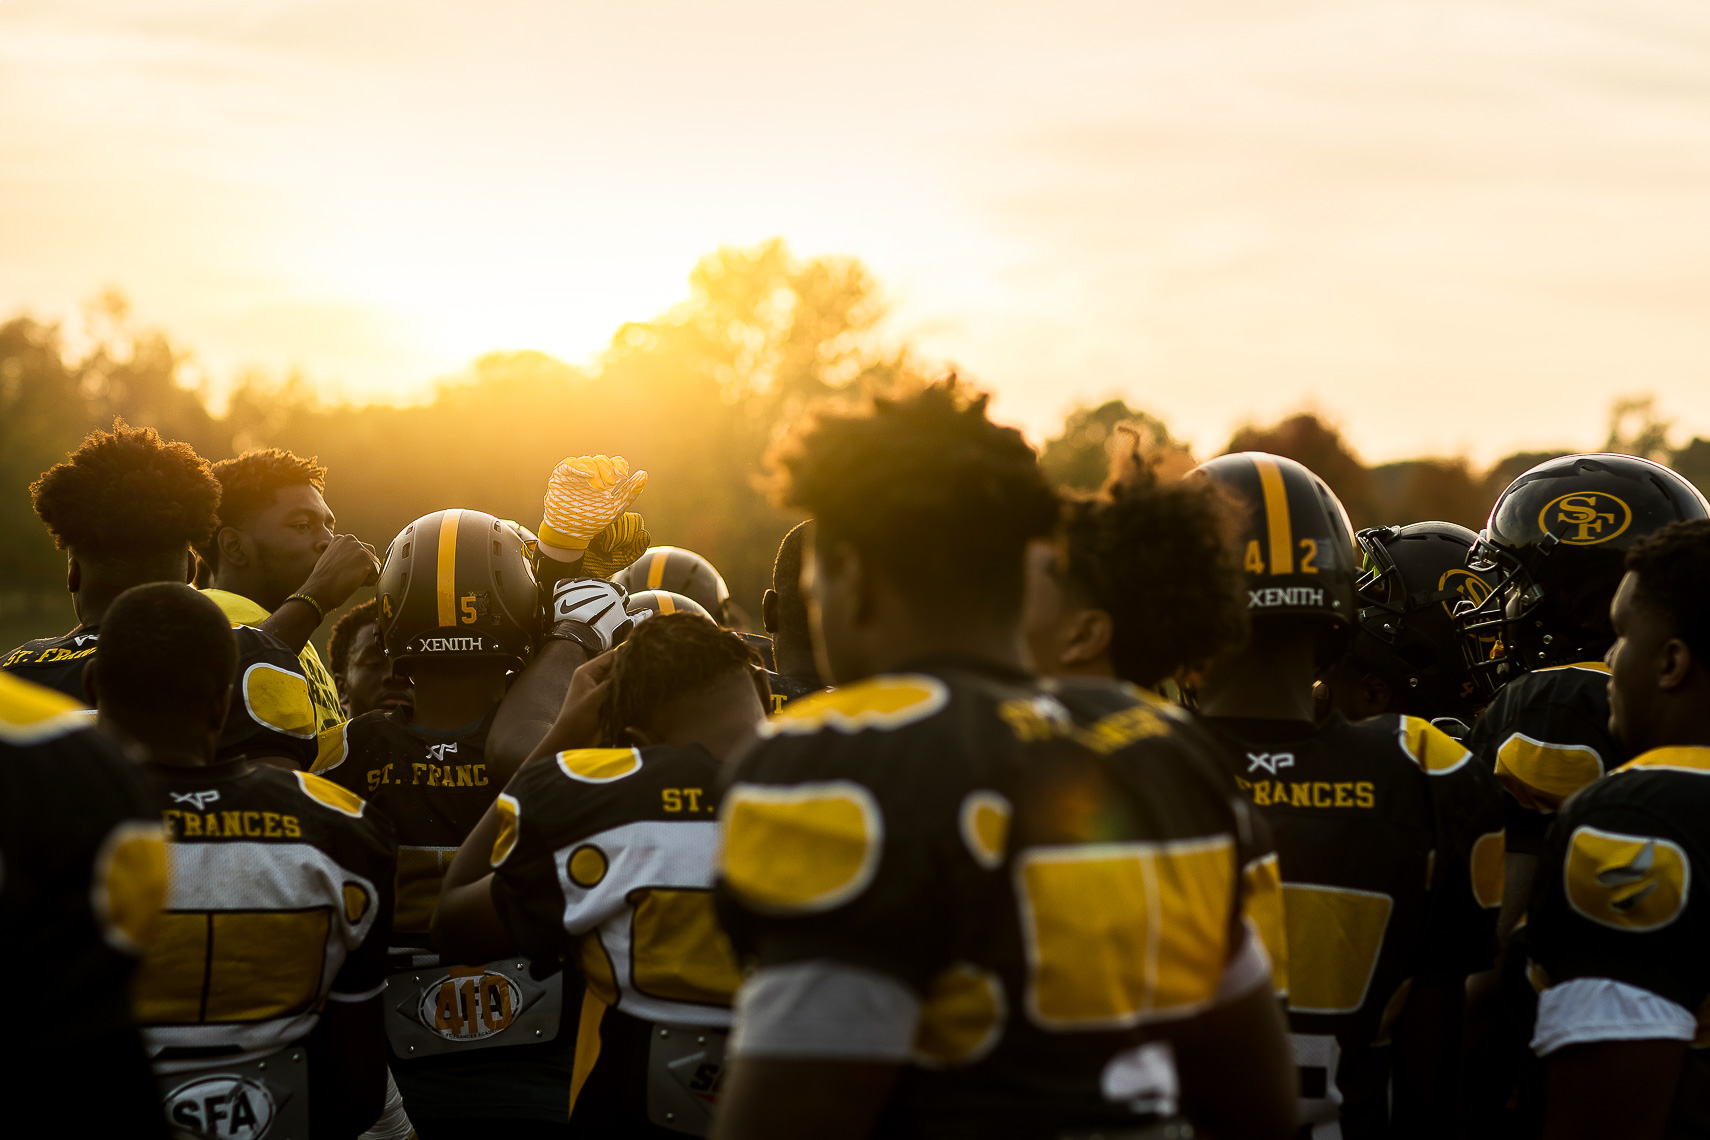 stfrances03_ St Frances Academy Panthers football Baltimore City poverty ESPN documentary MIAA Champions youth football team coached by former Gilman and Michigan football coach Biff Poggi